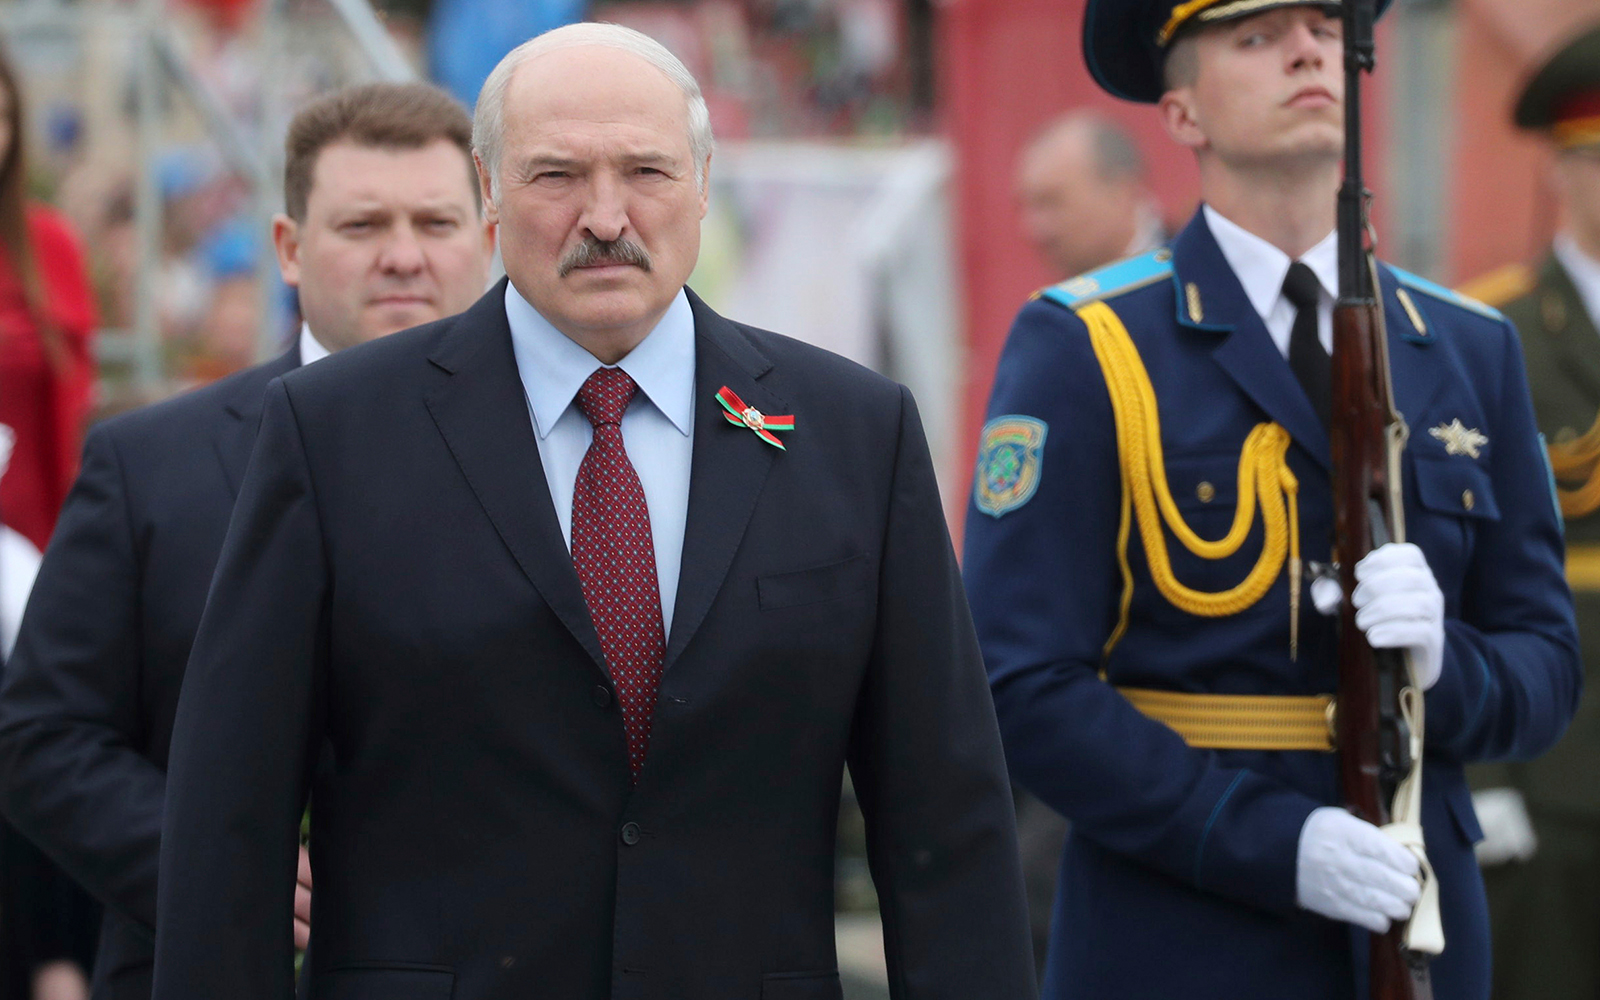 Belarus detains Russian mercenaries before election - state media